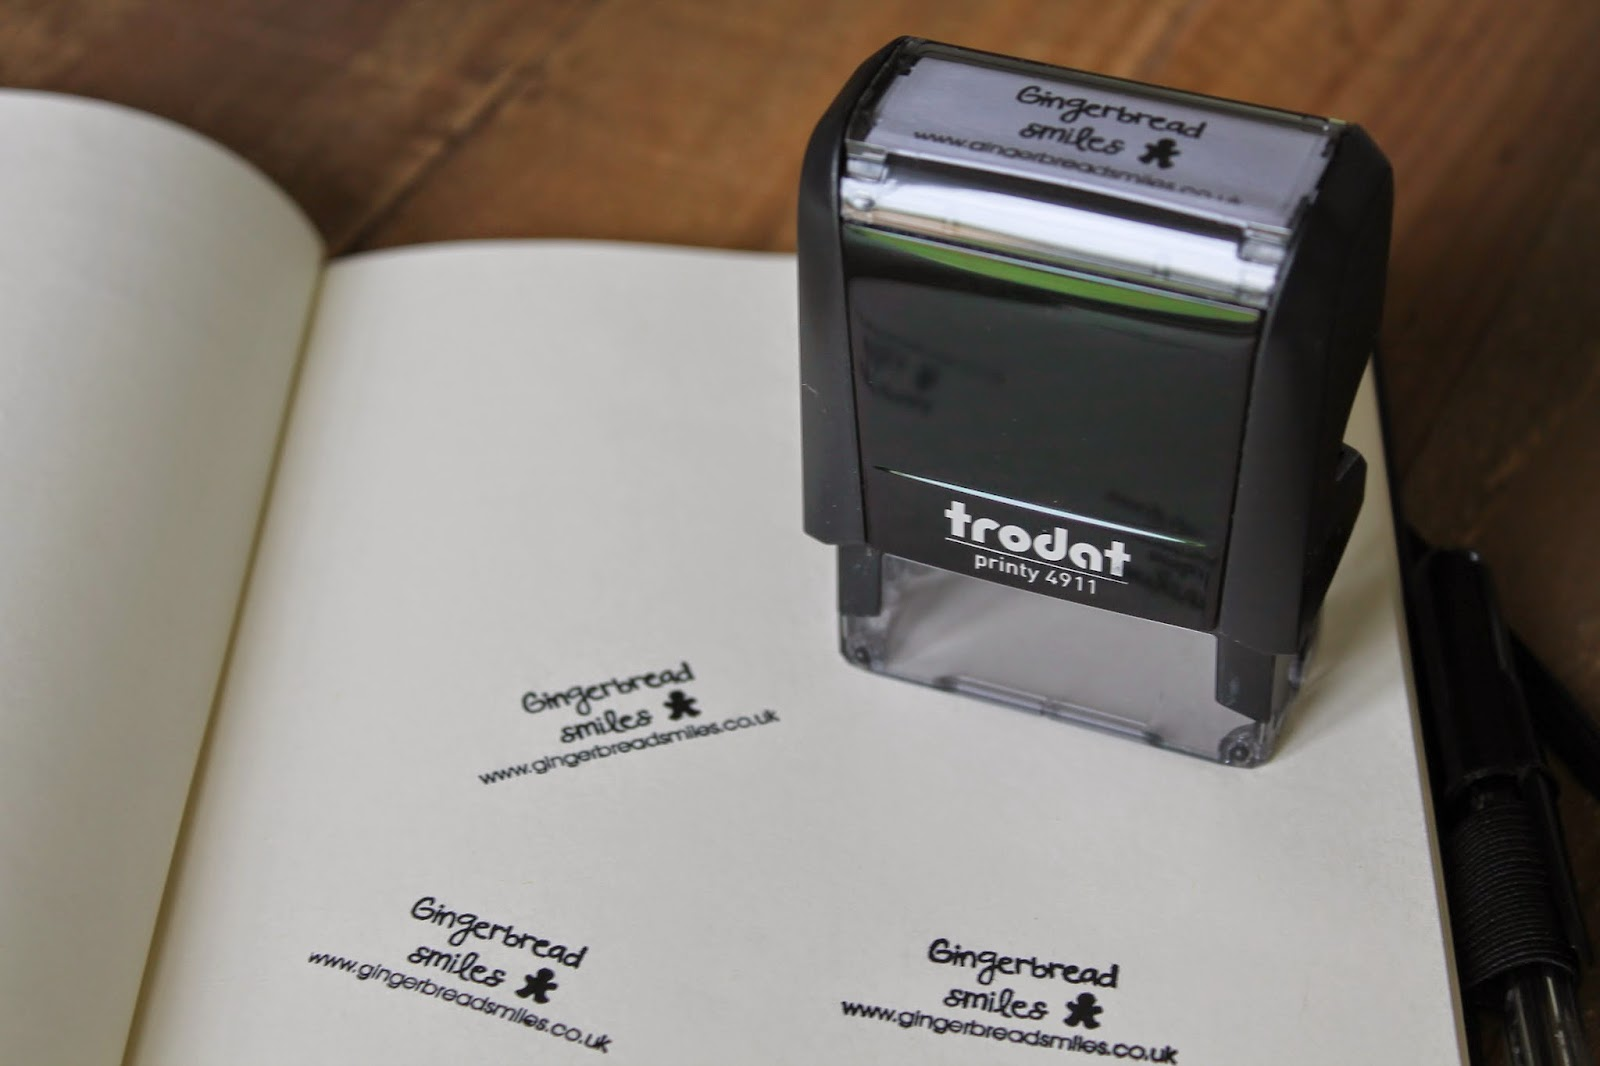 Viking Direct Stationery Review - Trodat personalised stamp - Gingerbread Smiles logo